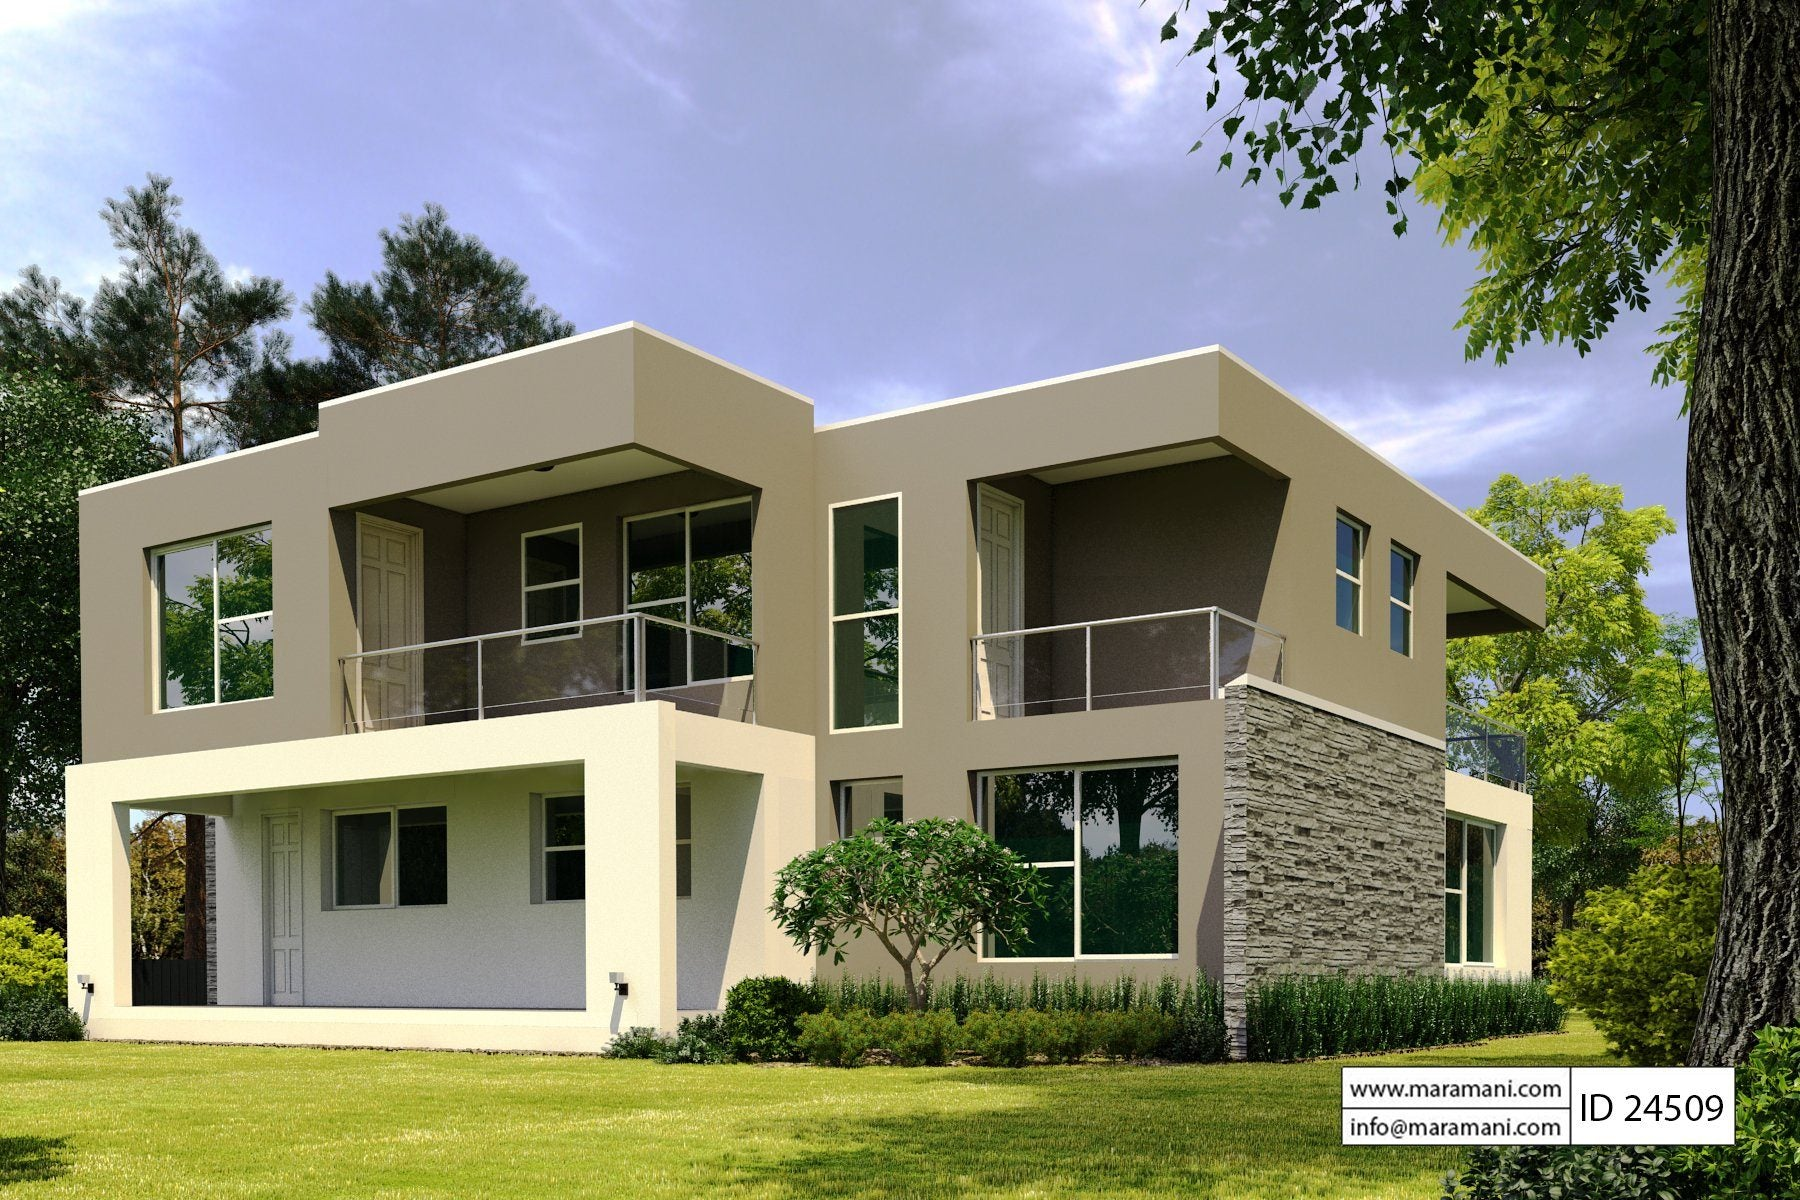 4 bedroom modern house plan id 24509 house plans by for Modern 4 bedroom house floor plans